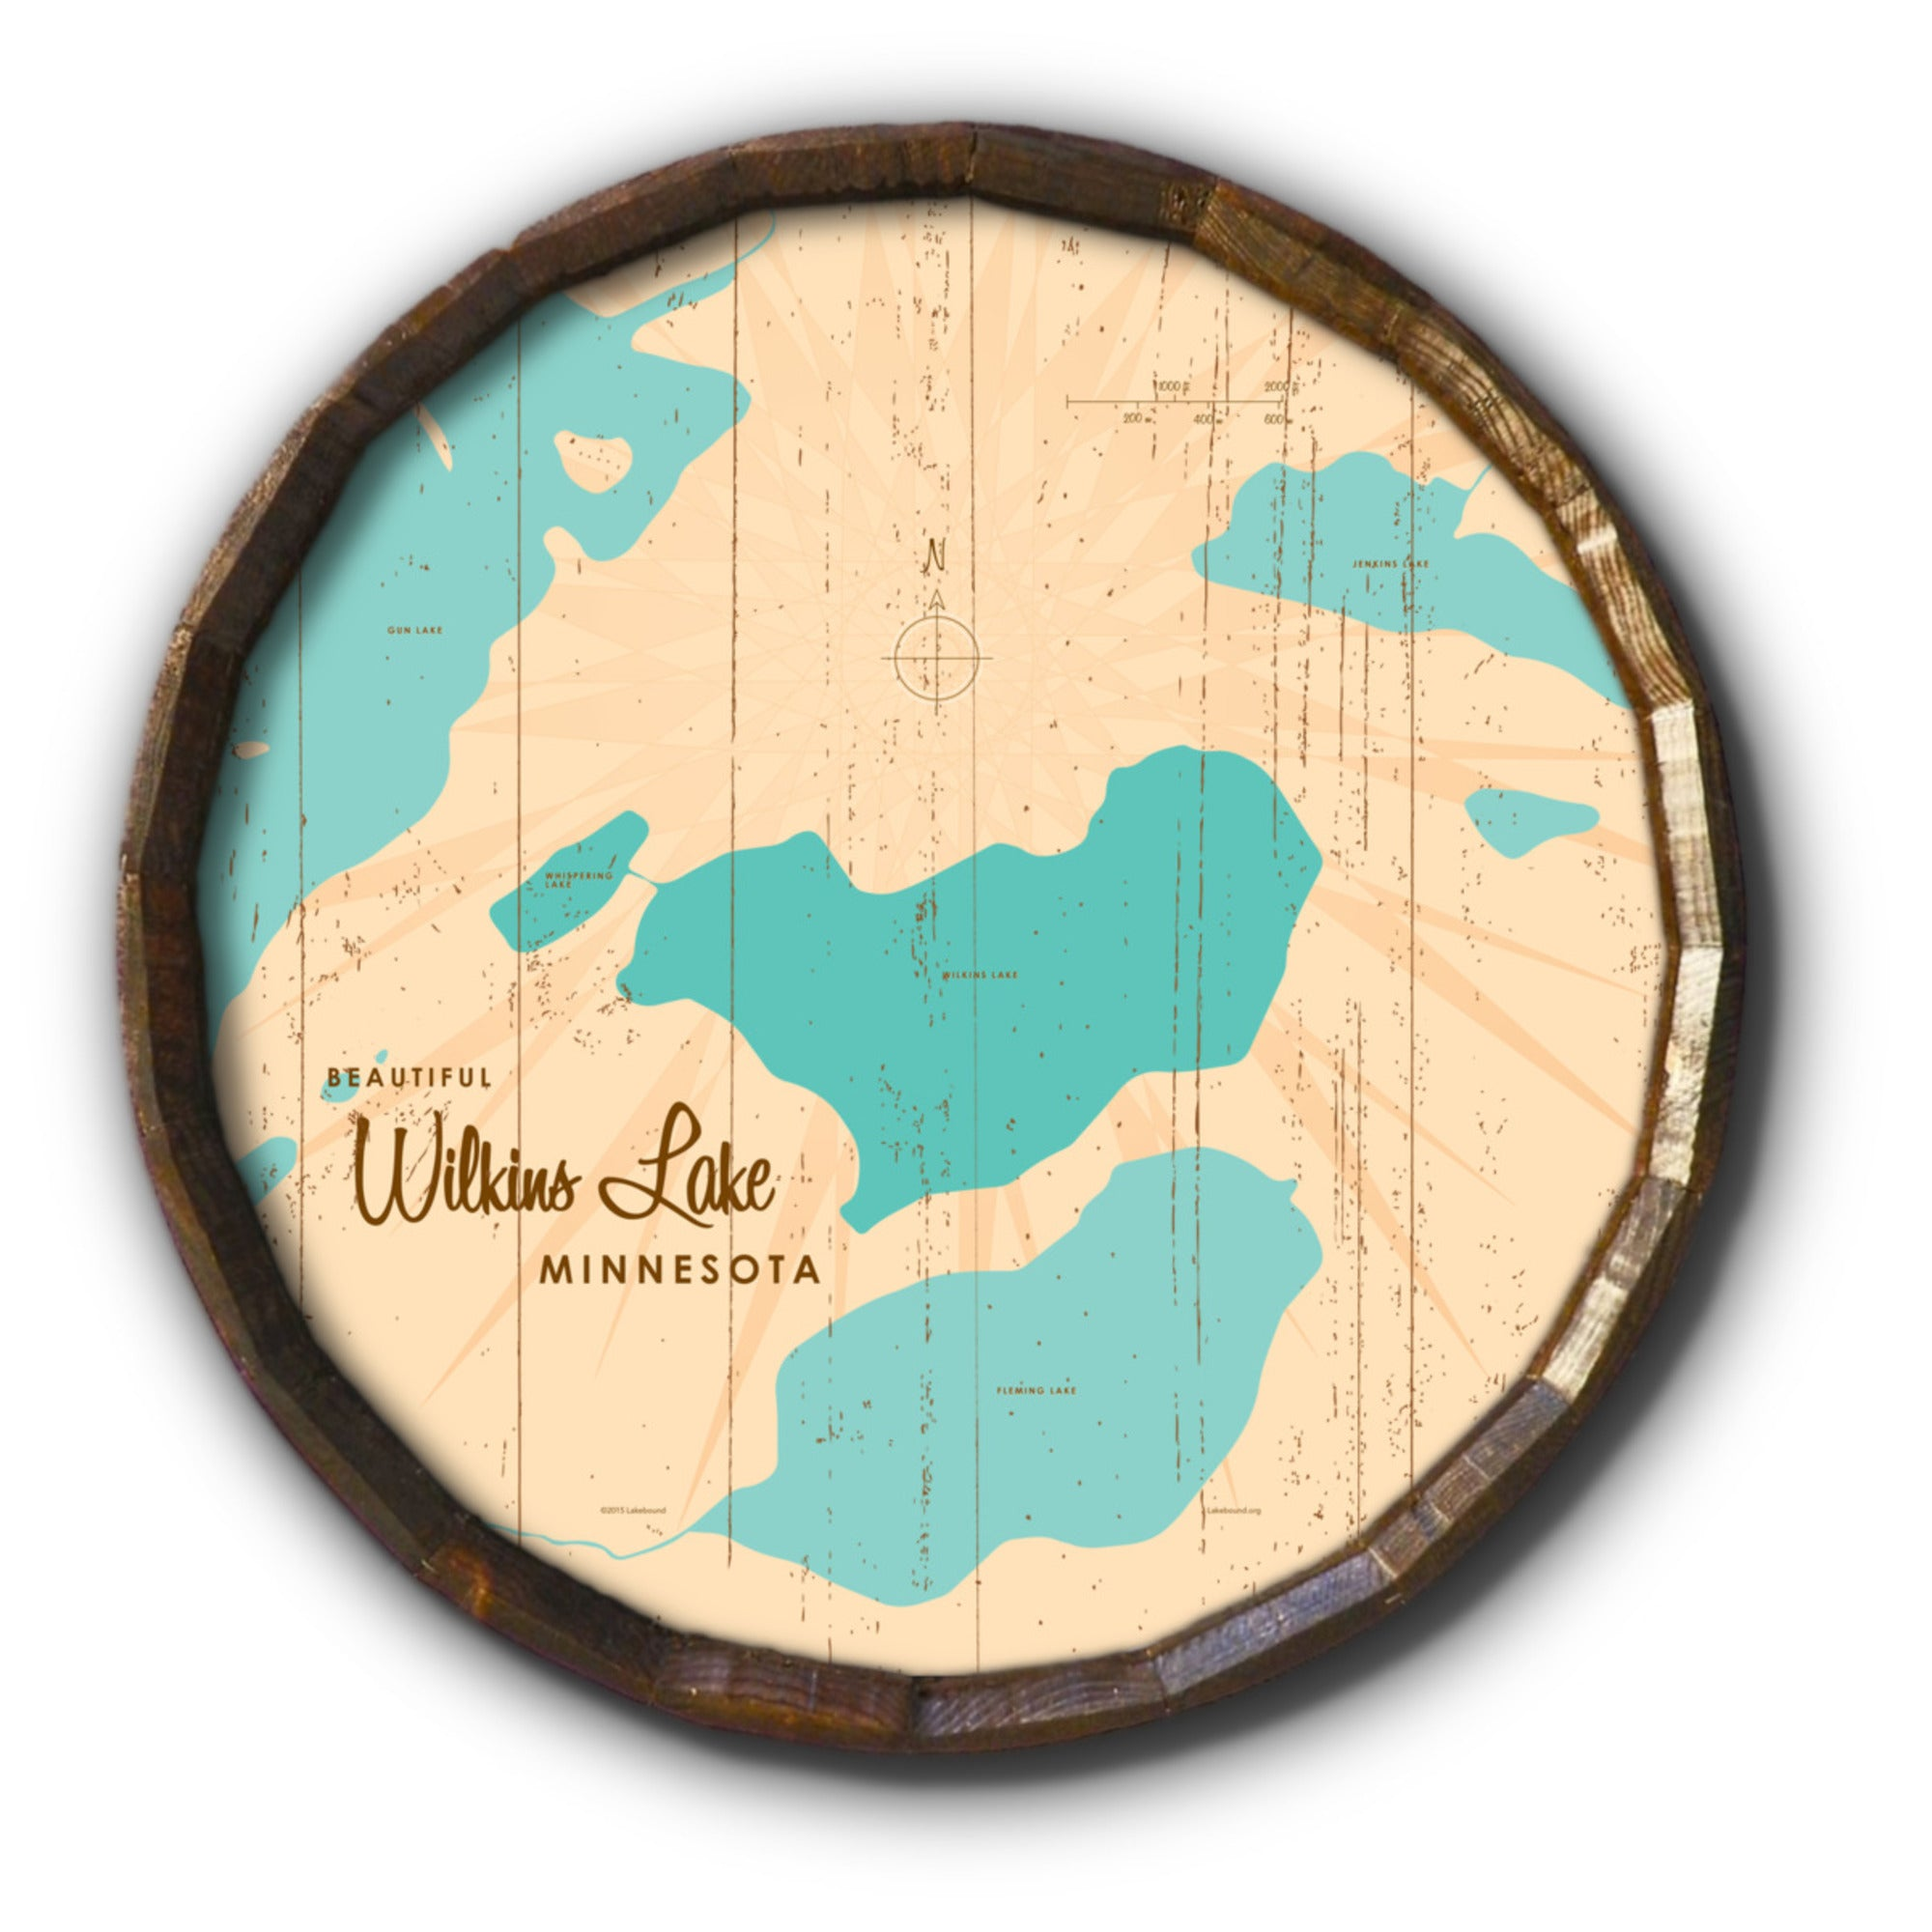 Wilkins Lake Minnesota, Rustic Barrel End Map Art